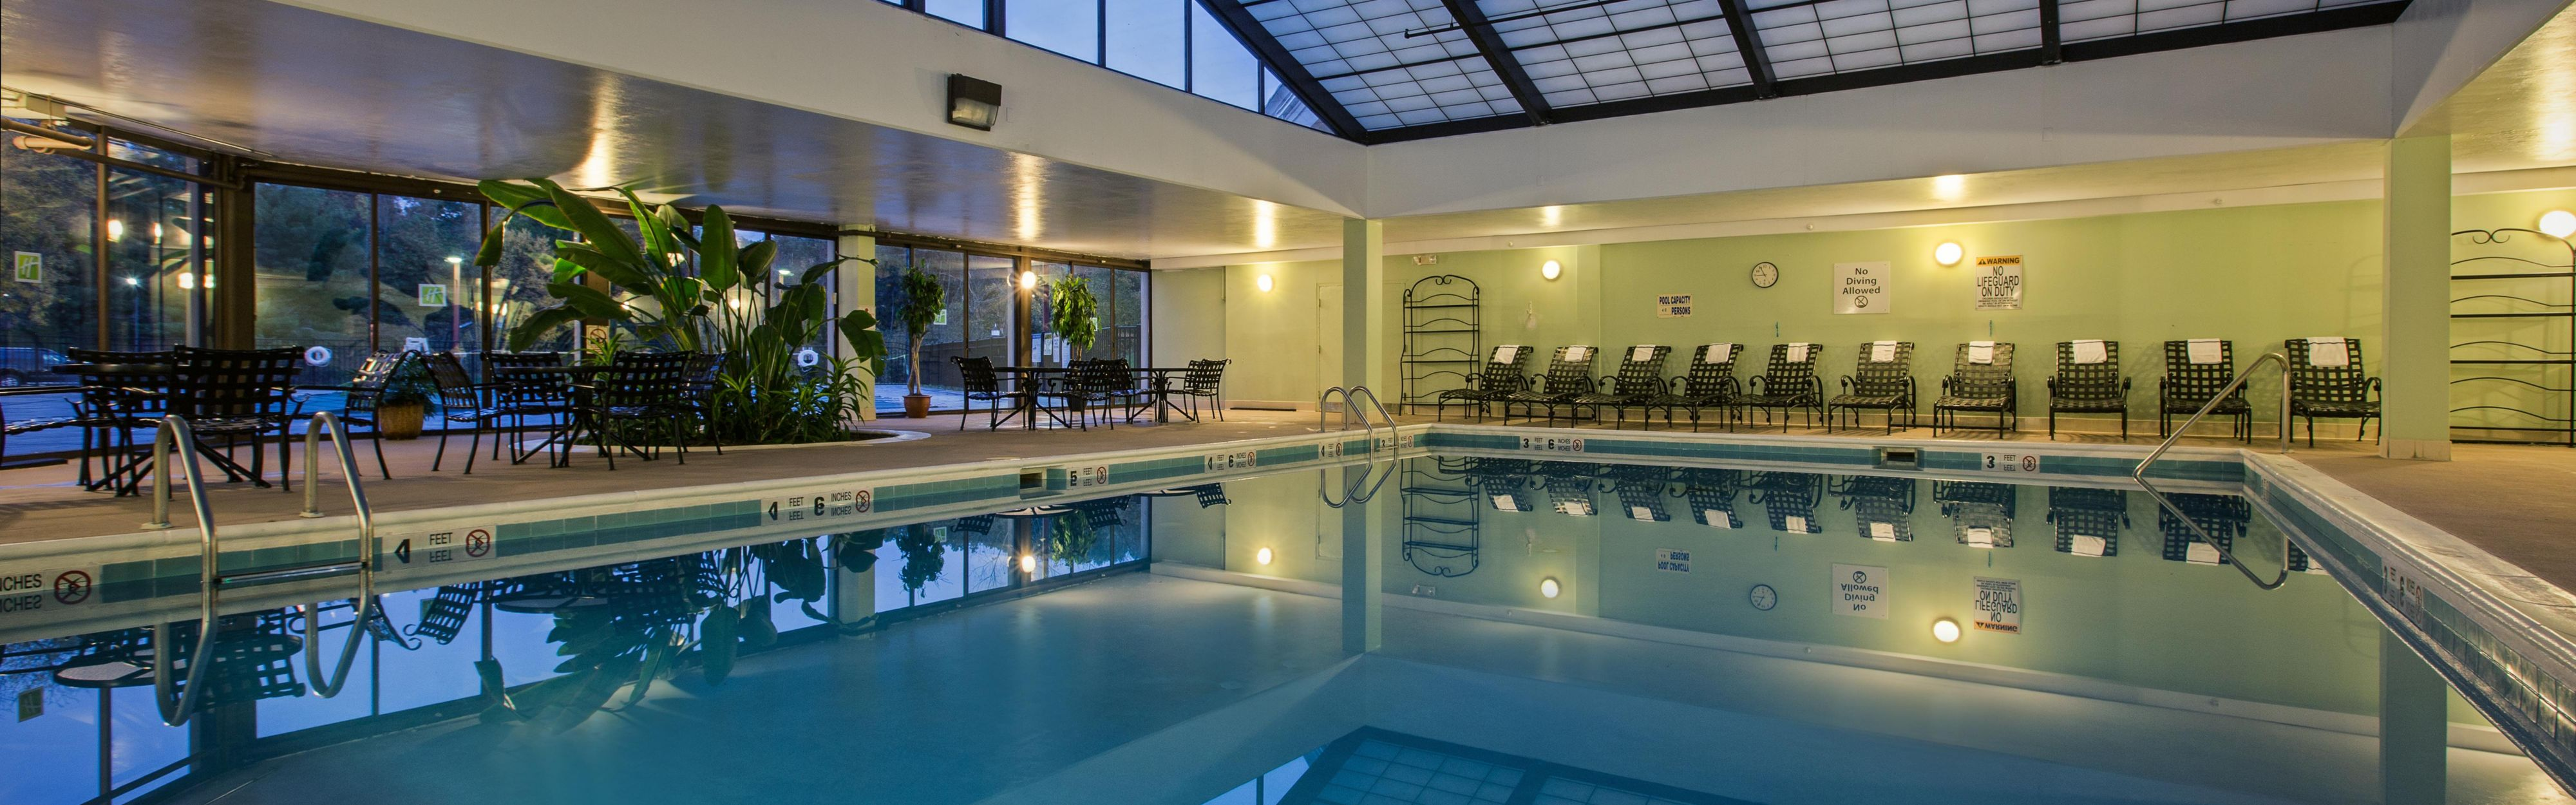 Holiday inn springfield south enfield ct hotel for A salon enfield ct